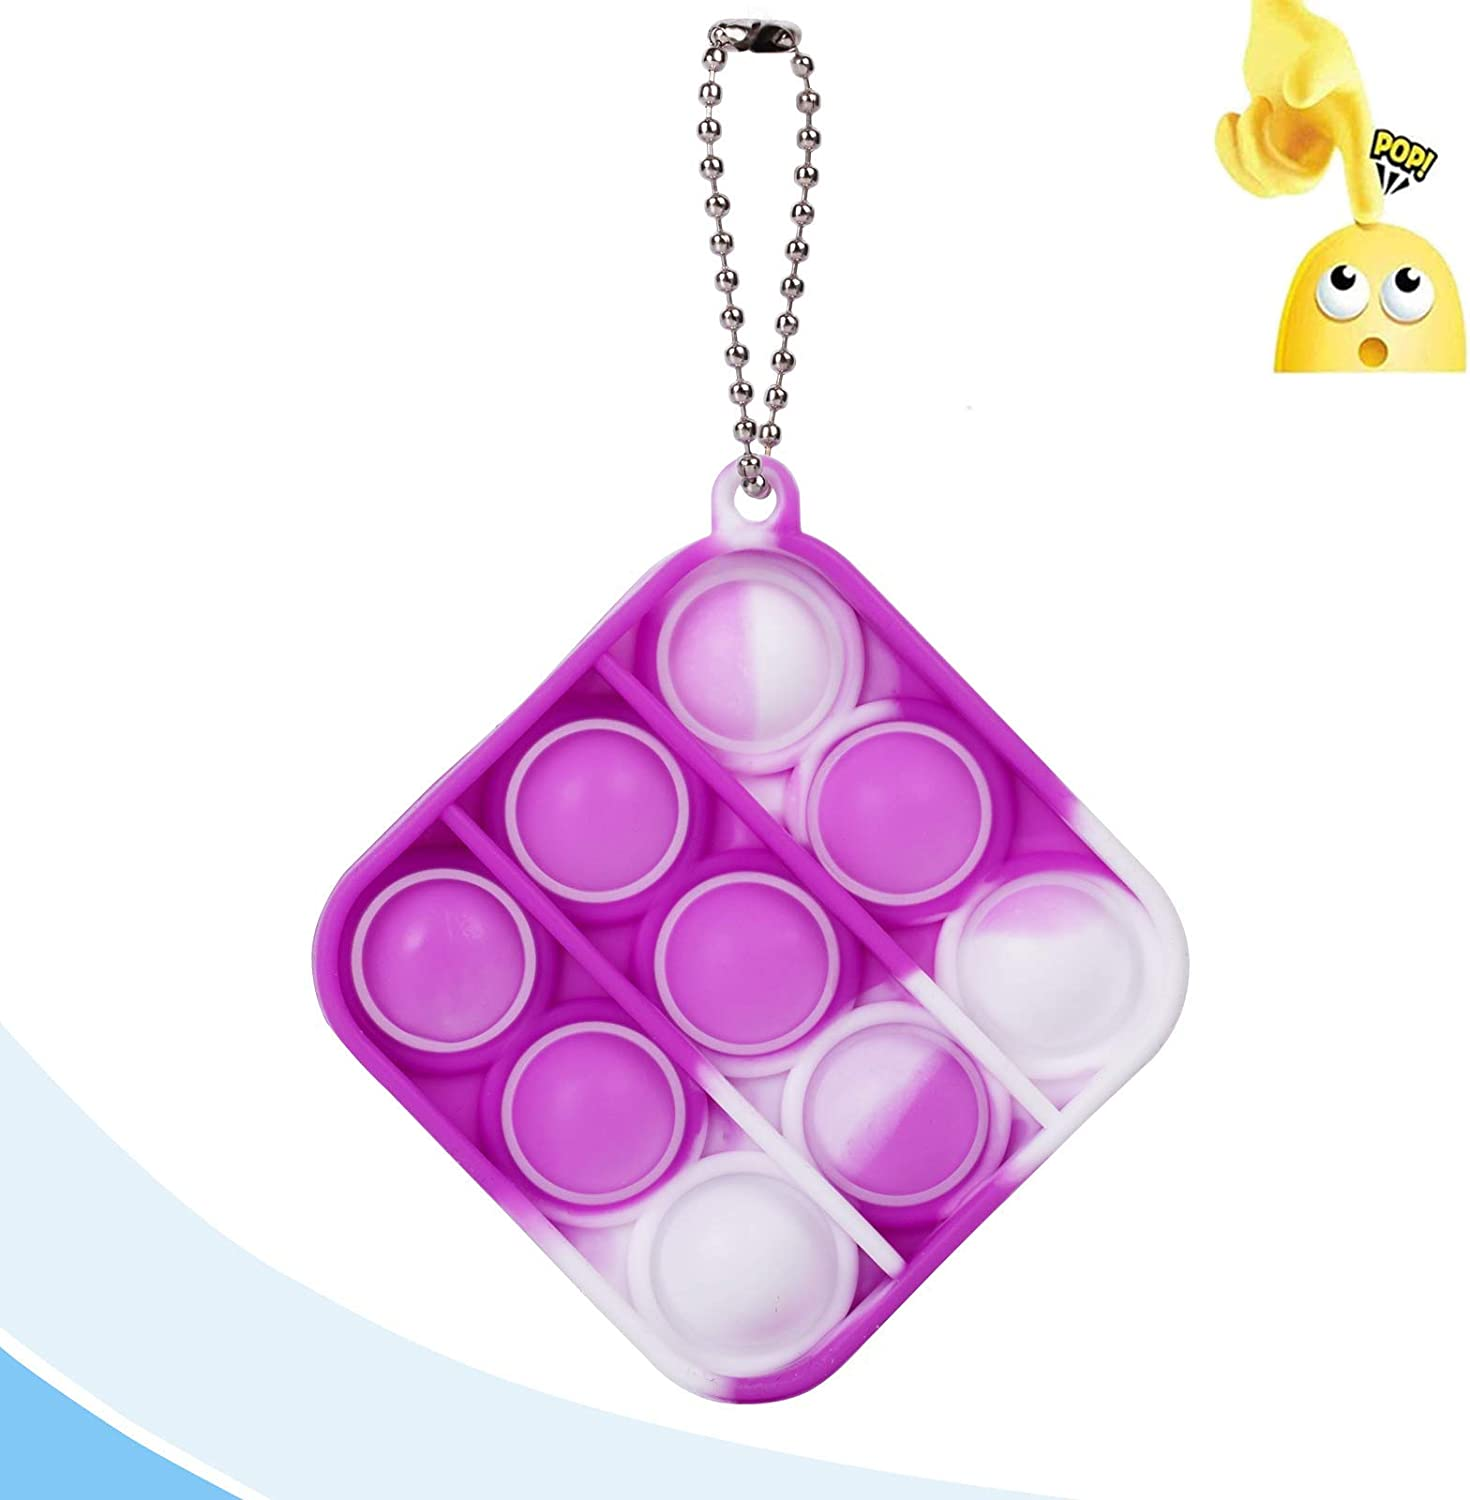 Style 6 Adult and Child Gift Keychain Toy Push Sensory Toy That relieves Stress Jesokiibo 1Pcs Mini Pop Pop Fidget Toy Anti-Anxiety Silicone Squeeze Toy